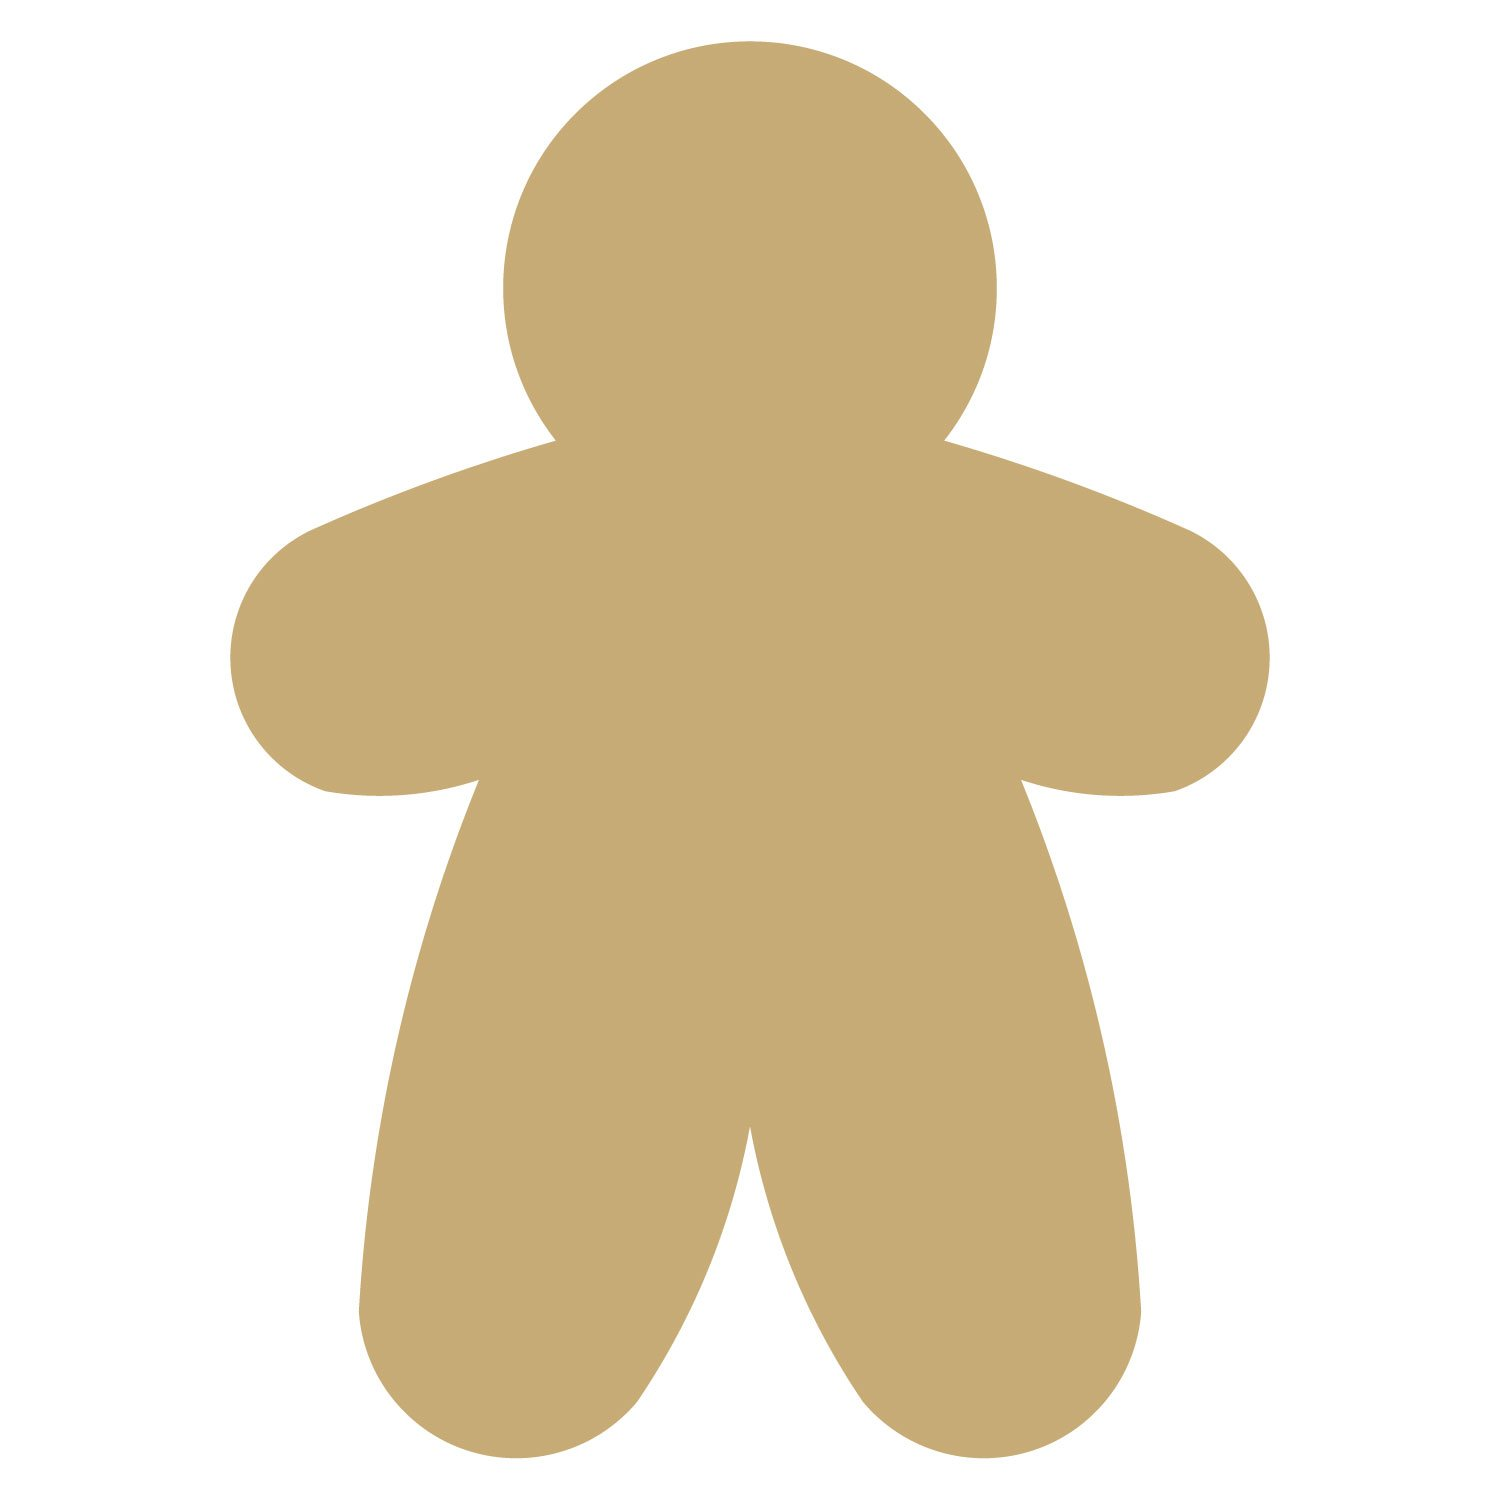 Kristi w designs layered clipart gingerbread men svg freeuse library Gingerbread Man #2 svg freeuse library